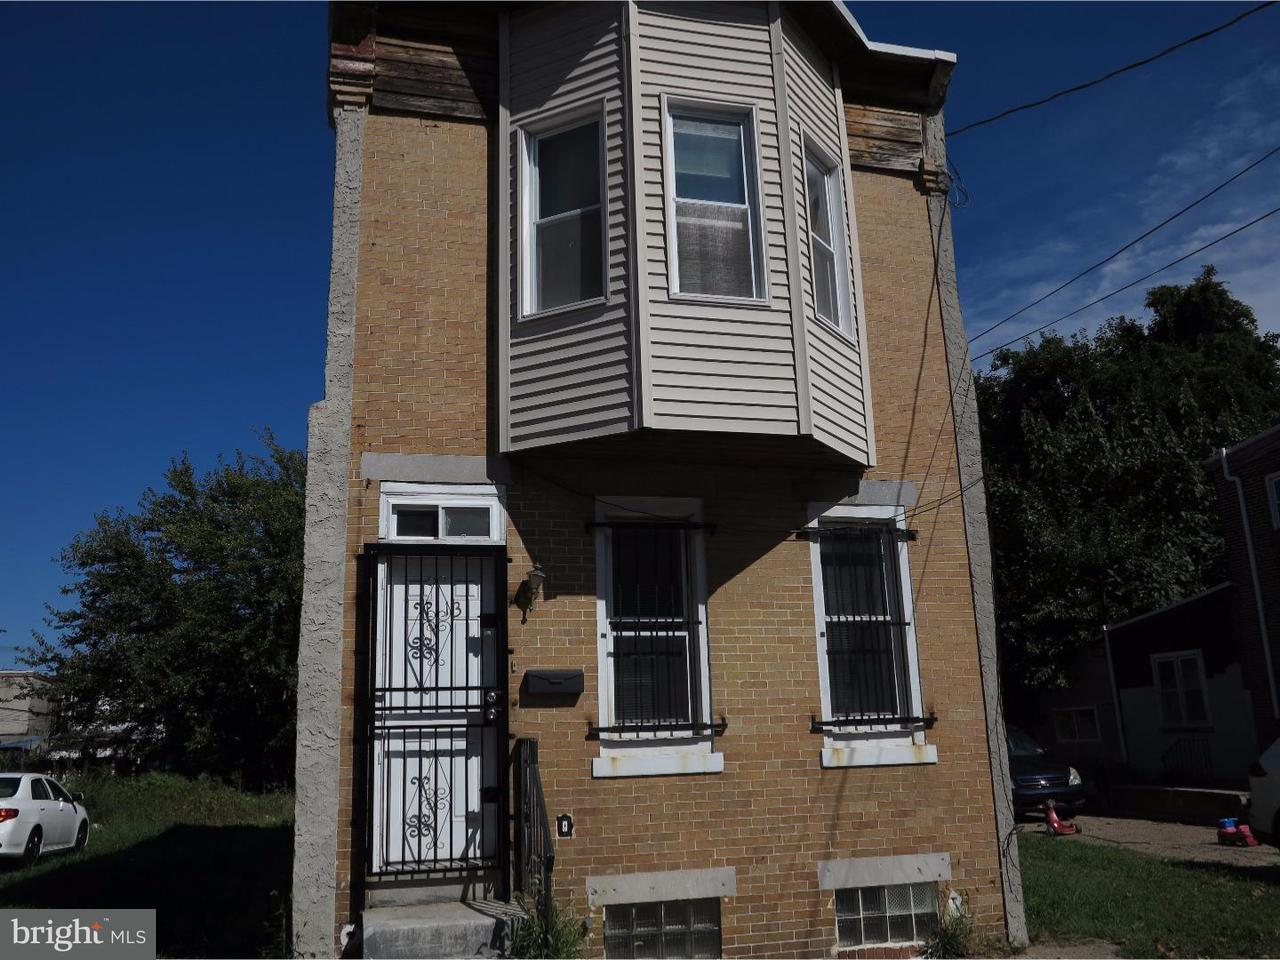 Single Family Home for Rent at 1113 LIBERTY Street Camden, New Jersey 08104 United States